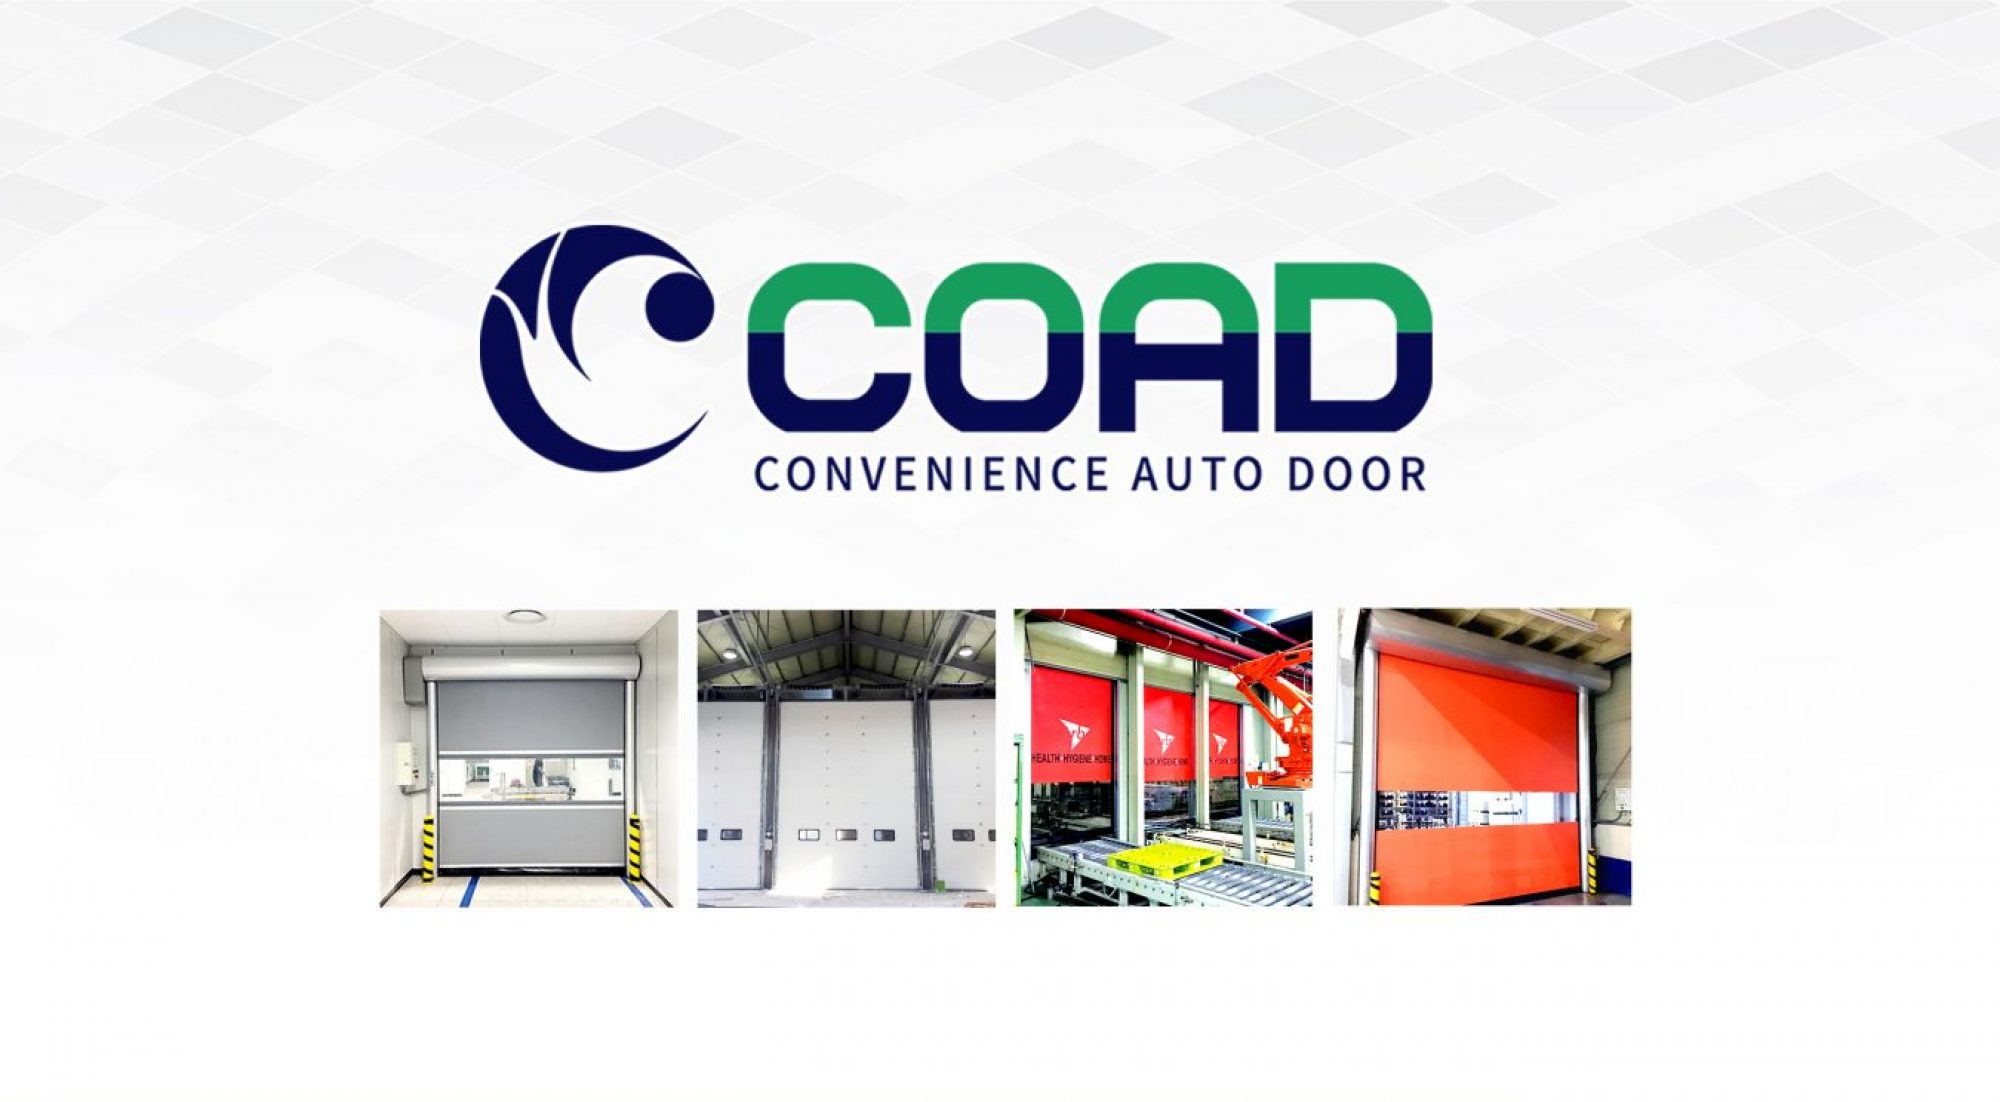 COAD HIGH SPEED DOOR, RAPID DOOR, INDUSTRIAL DOOR